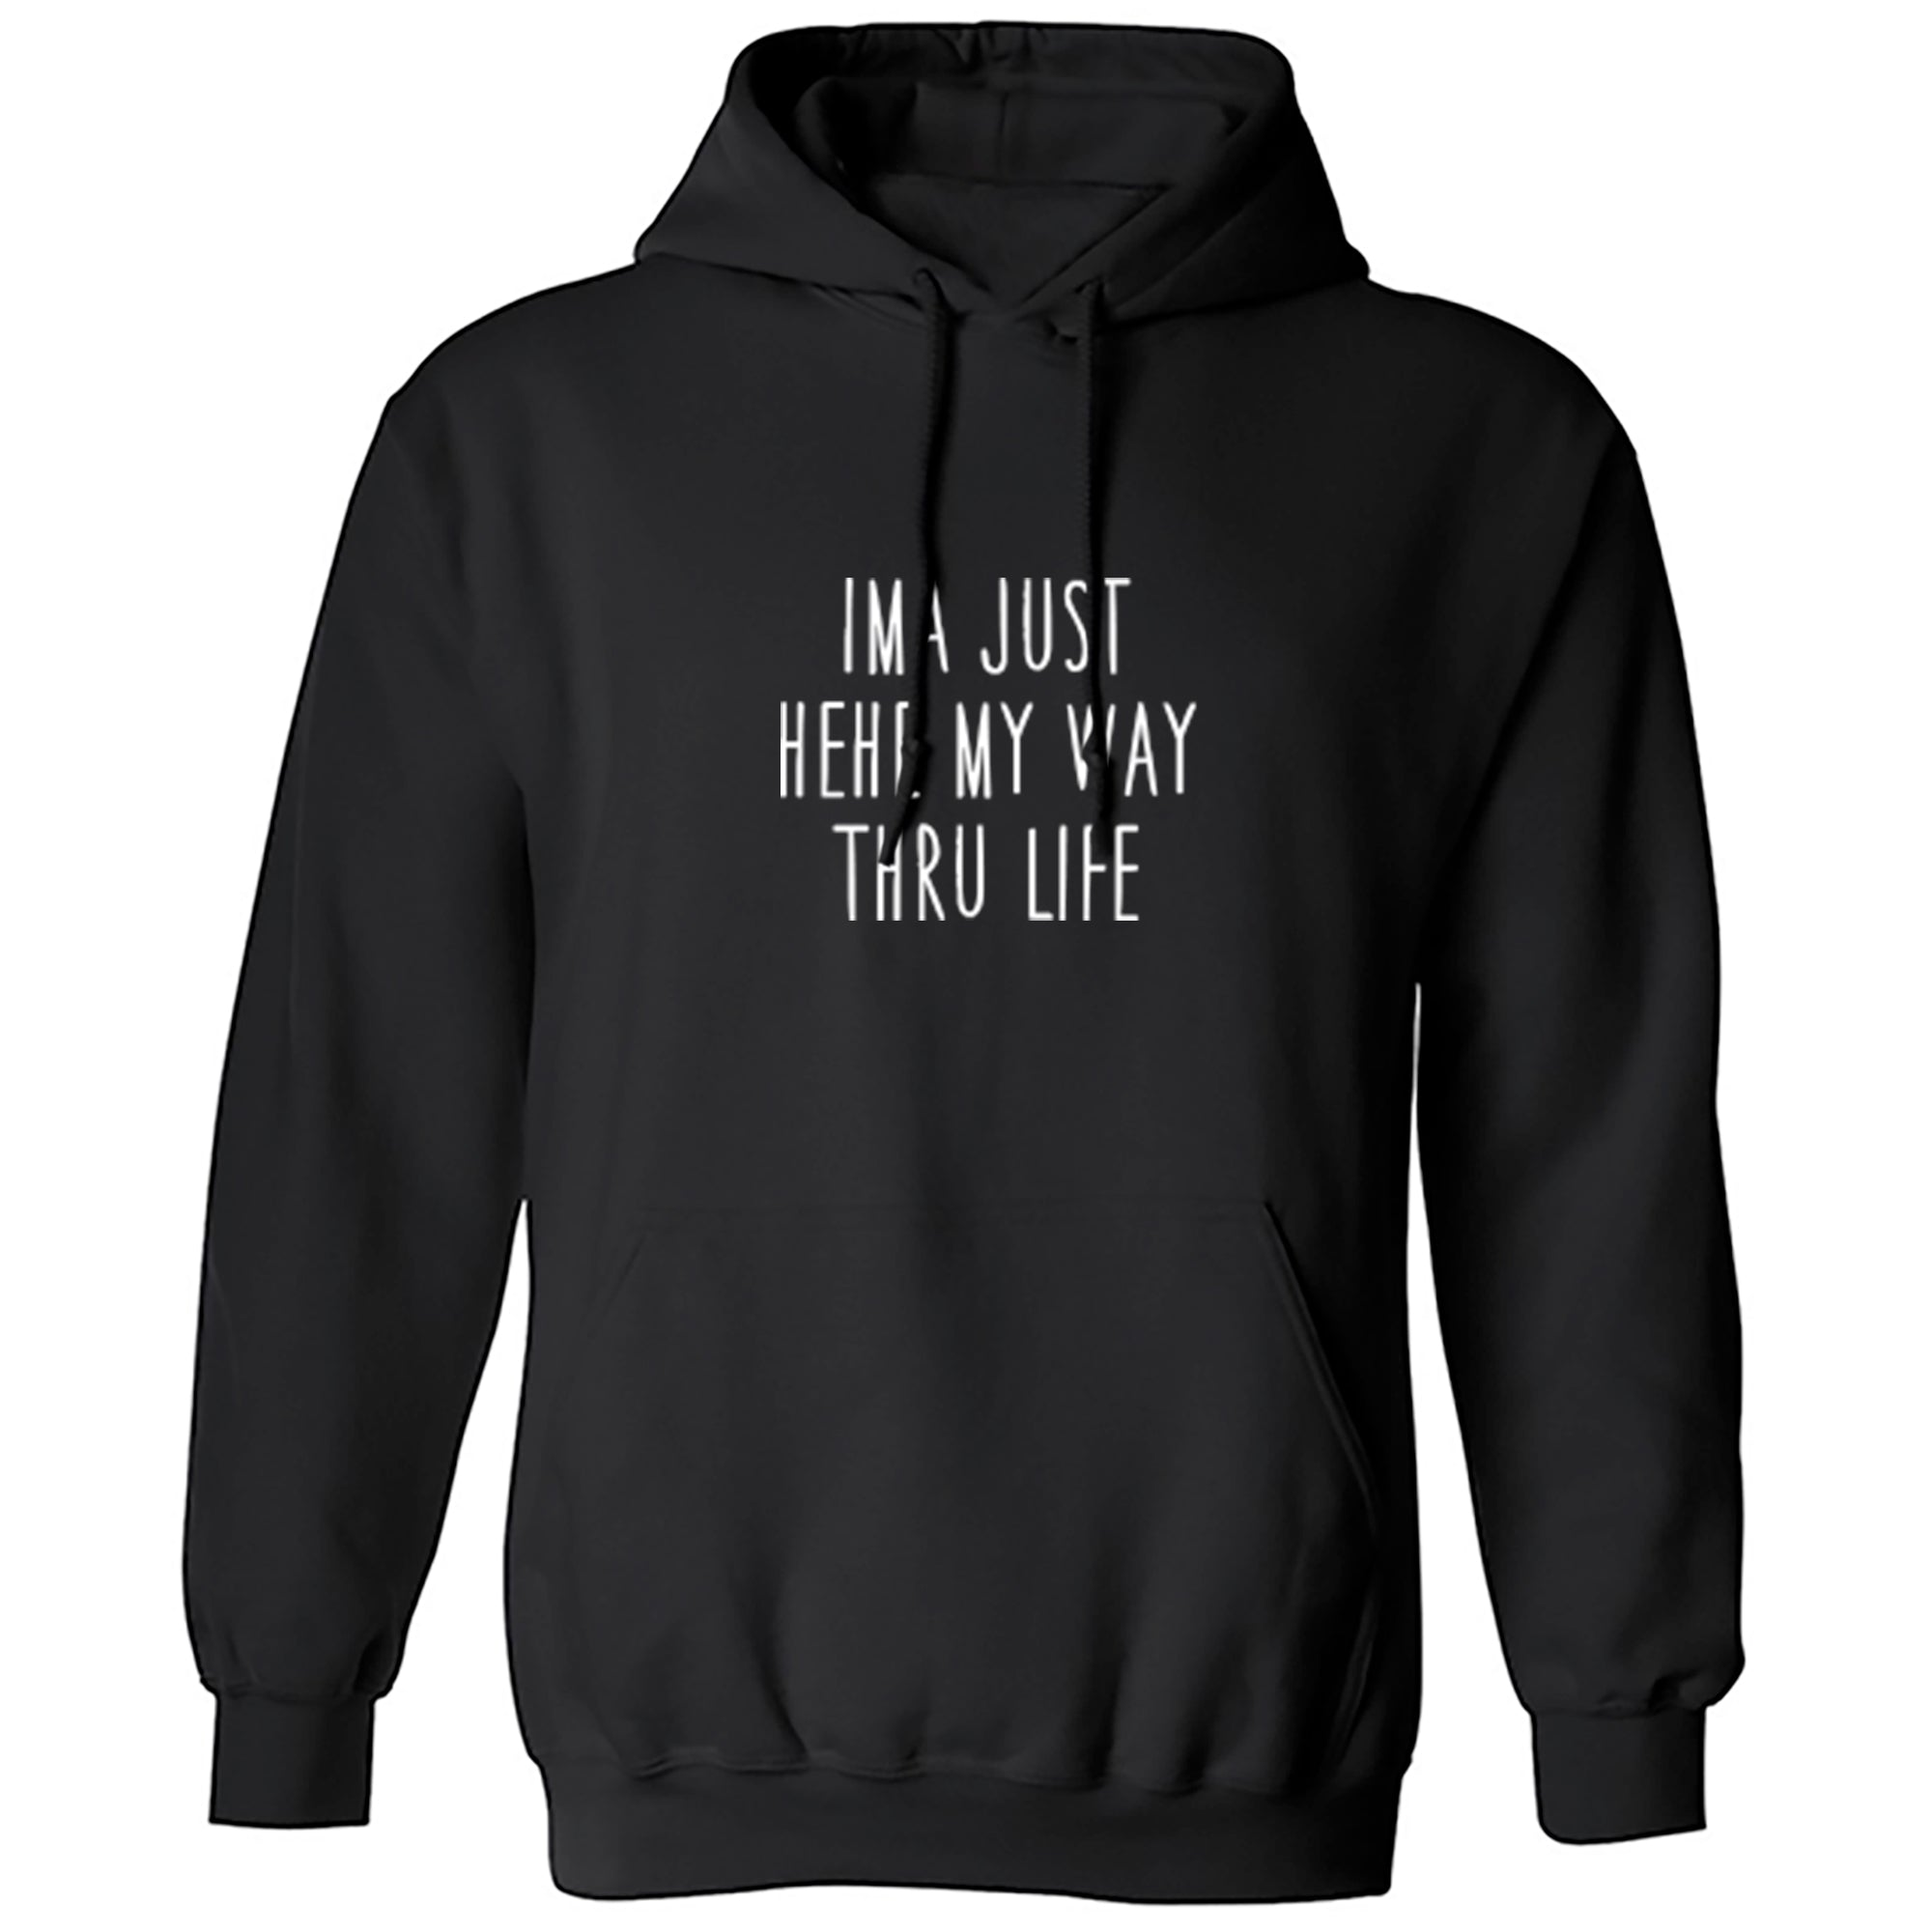 Ima Just Hehe My Way Thru Life Unisex Hoodie S1209